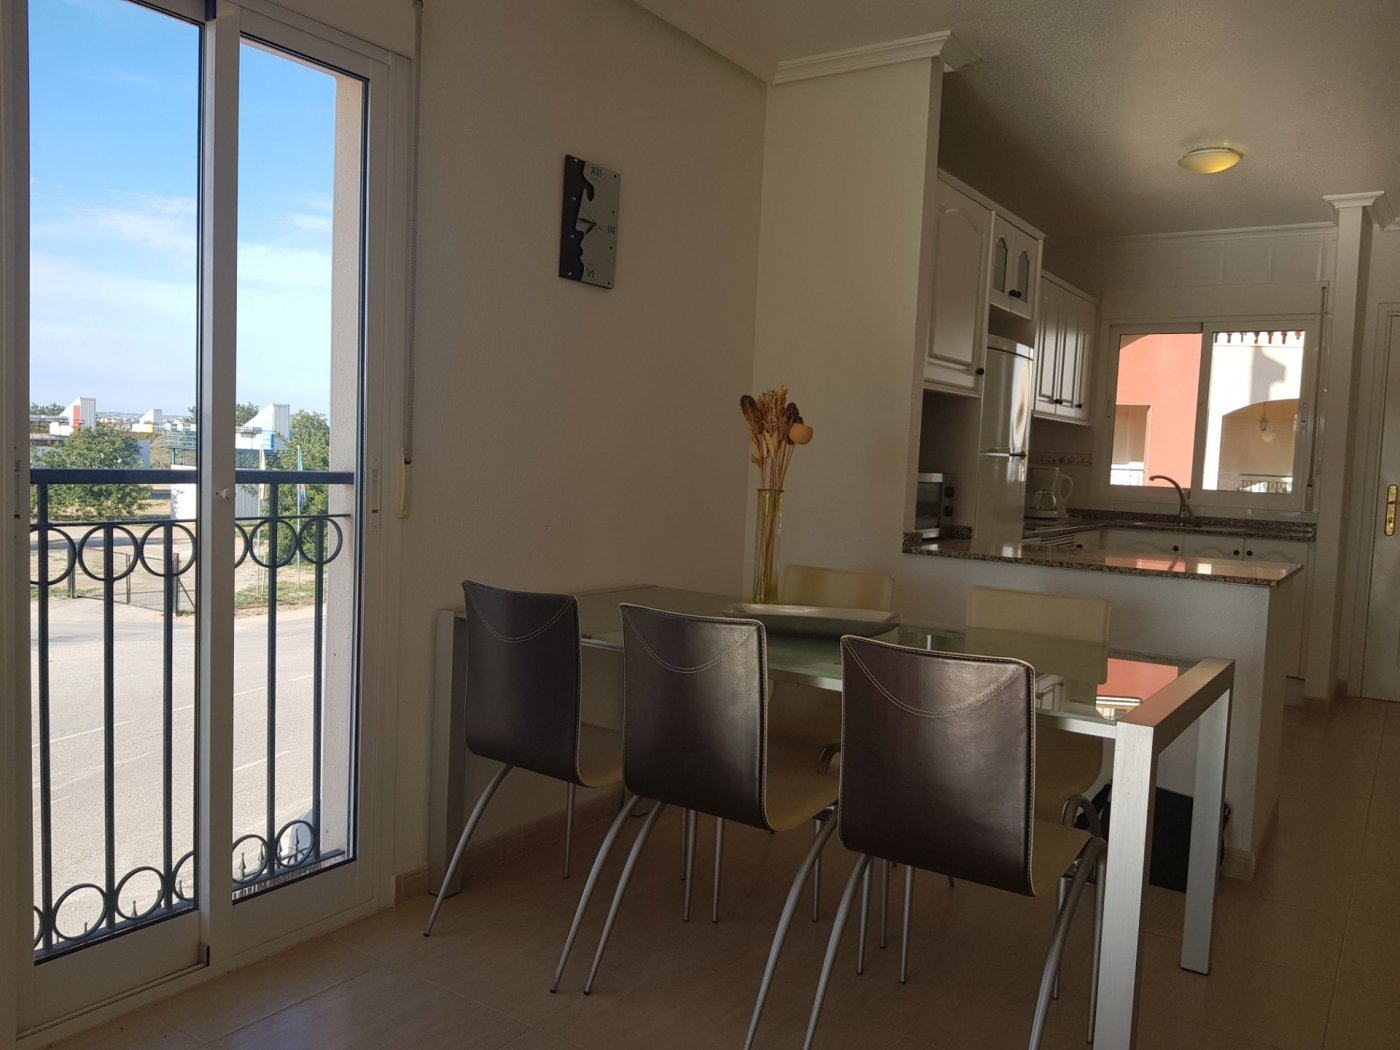 Gallery Image 11 of Fantastic corner apartment on walking distance of beach and shopping centre